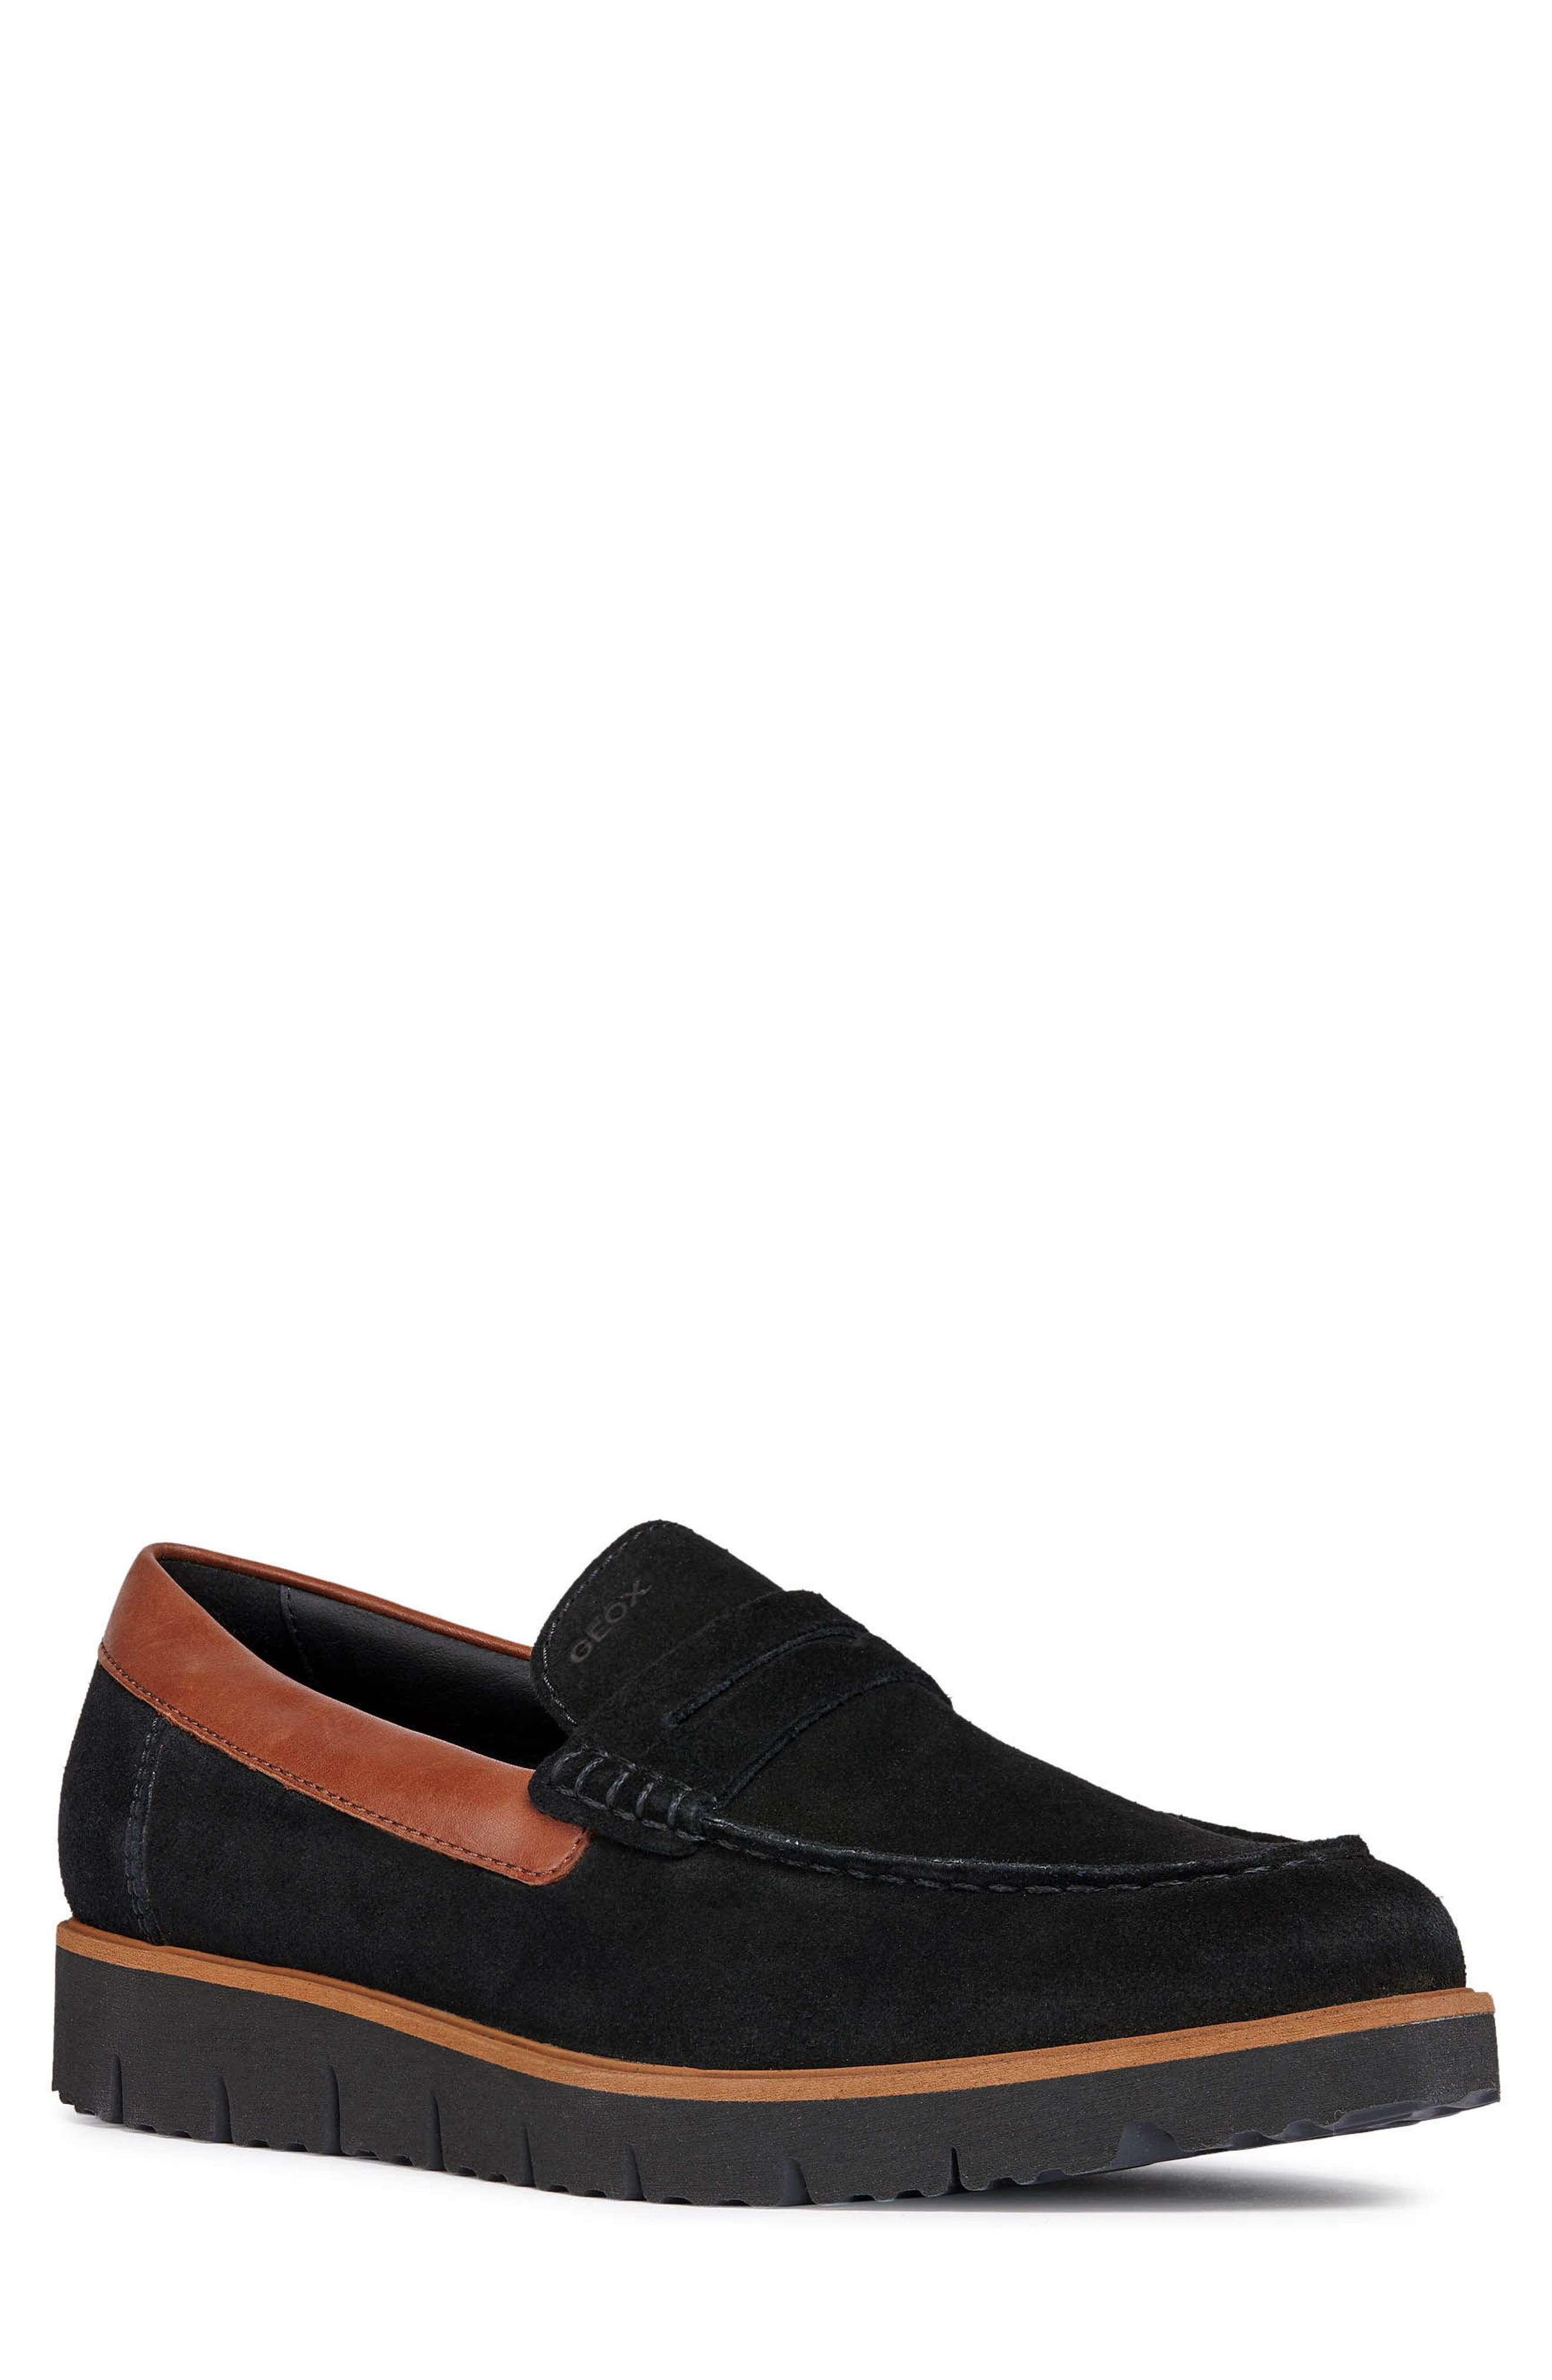 New Pluges 6 Penny Loafer,                         Main,                         color, BLACK/ BROWN LEATHER